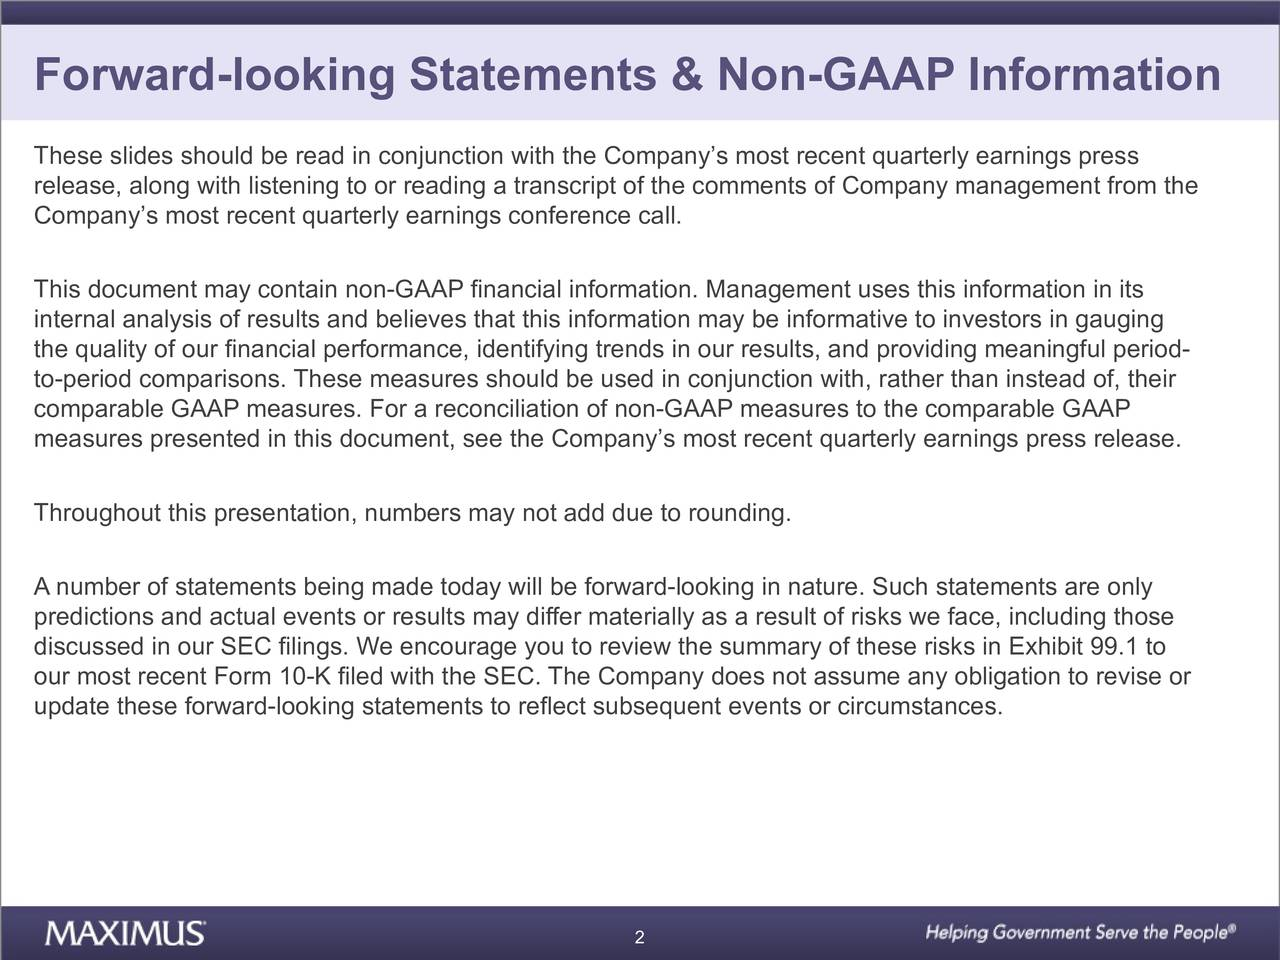 These slides should be read in conjunction with the Companys most recent quarterly earnings press release, along with listening to or reading a transcript of the comments of Company management from the Companys most recent quarterly earnings conference call. This document may contain non-GAAP financial information. Management uses this information in its internal analysis of results and believes that this information may be informative to investors in gauging the quality of our financial performance, identifying trends in our results, and providing meaningful period- to-period comparisons. These measures should be used in conjunction with, rather than instead of, their comparable GAAP measures. For a reconciliation of non-GAAP measures to the comparable GAAP measures presented in this document, see the Companys most recent quarterly earnings press release. Throughout this presentation, numbers may not add due to rounding. A number of statements being made today will be forward-looking in nature. Such statements are only predictions and actual events or results may differ materially as a result of risks we face, including those discussed in our SEC filings. We encourage you to review the summary of these risks in Exhibit 99.1 to our most recent Form 10-K filed with the SEC. The Company does not assume any obligation to revise or update these forward-looking statements to reflect subsequent events or circumstances. 2